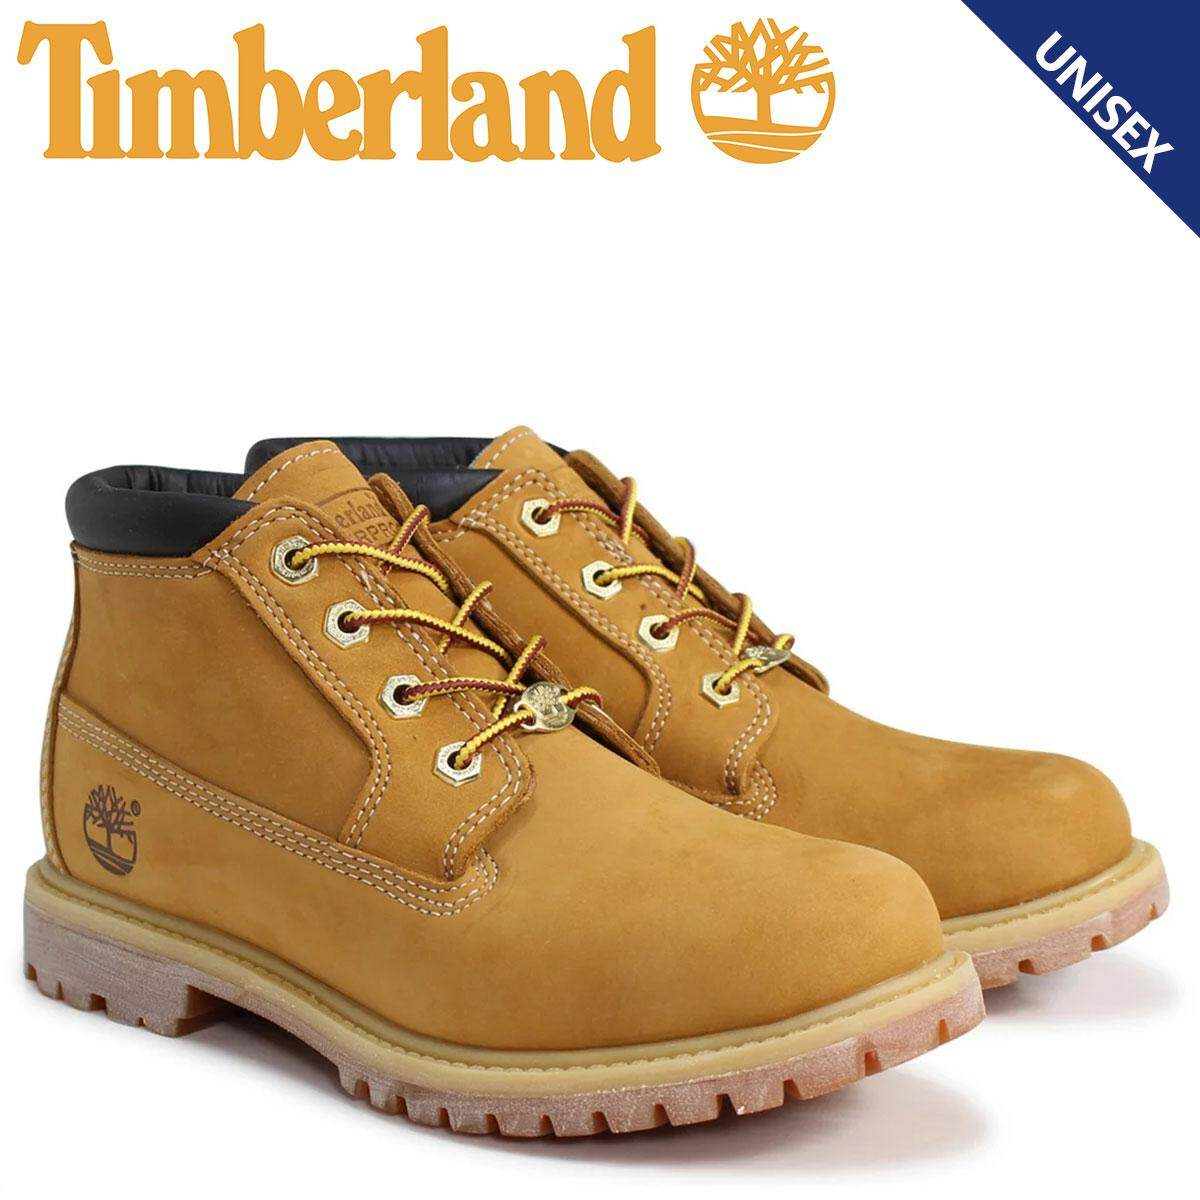 Sepatu Boot Timberland Nellie Lightweight Double Waterploof Boots 23399 W  Lebar Nelly Double Pria Gandum 0379f073e3